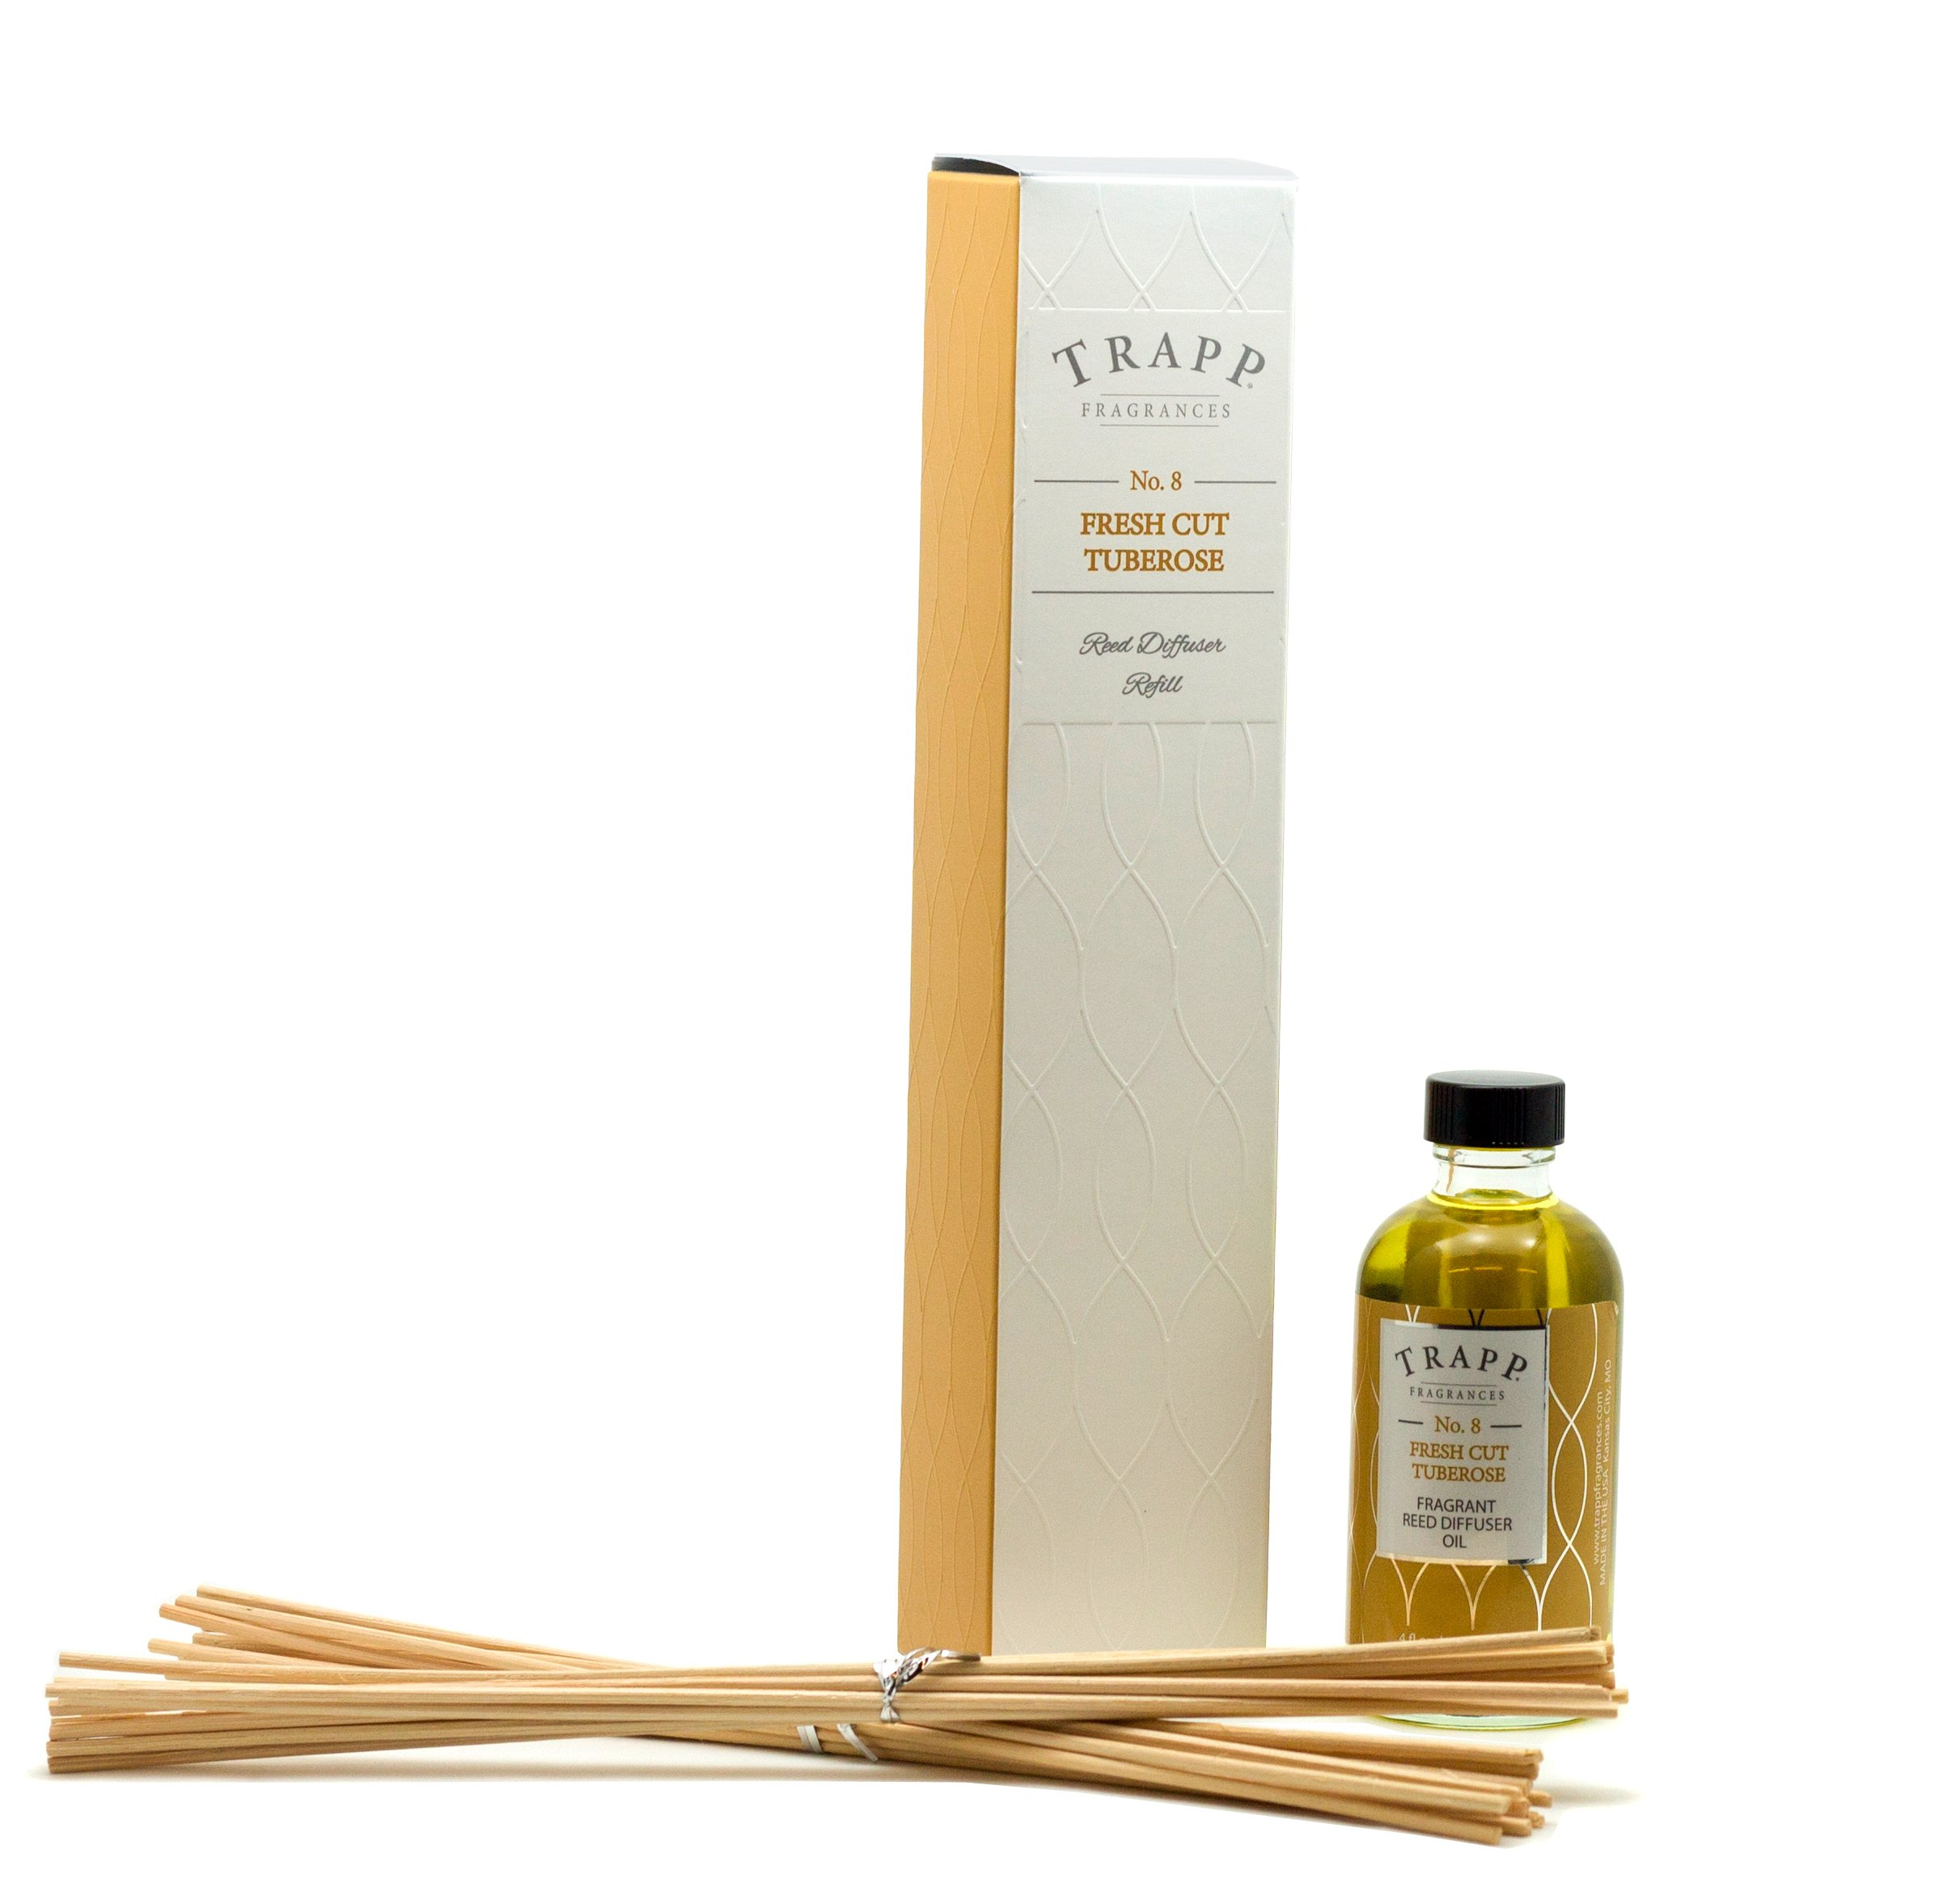 Trapp Candles Reed Diffuser Refill Kit, No. 8 Fresh Cut Tuberose, 4-Ounce